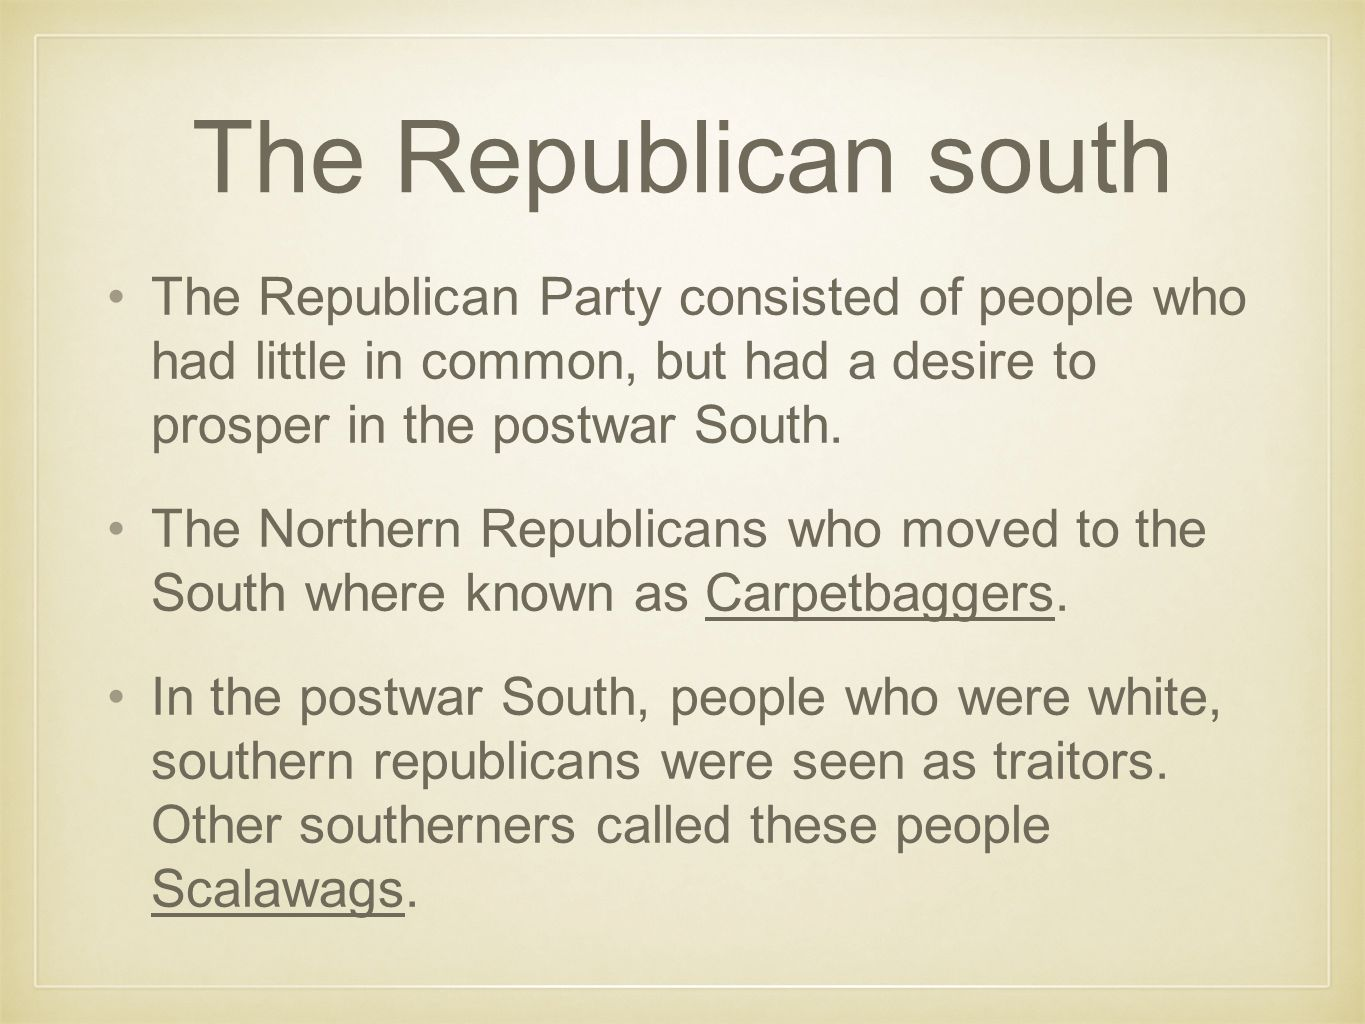 The Republican south The Republican Party consisted of people who had little in common, but had a desire to prosper in the postwar South.